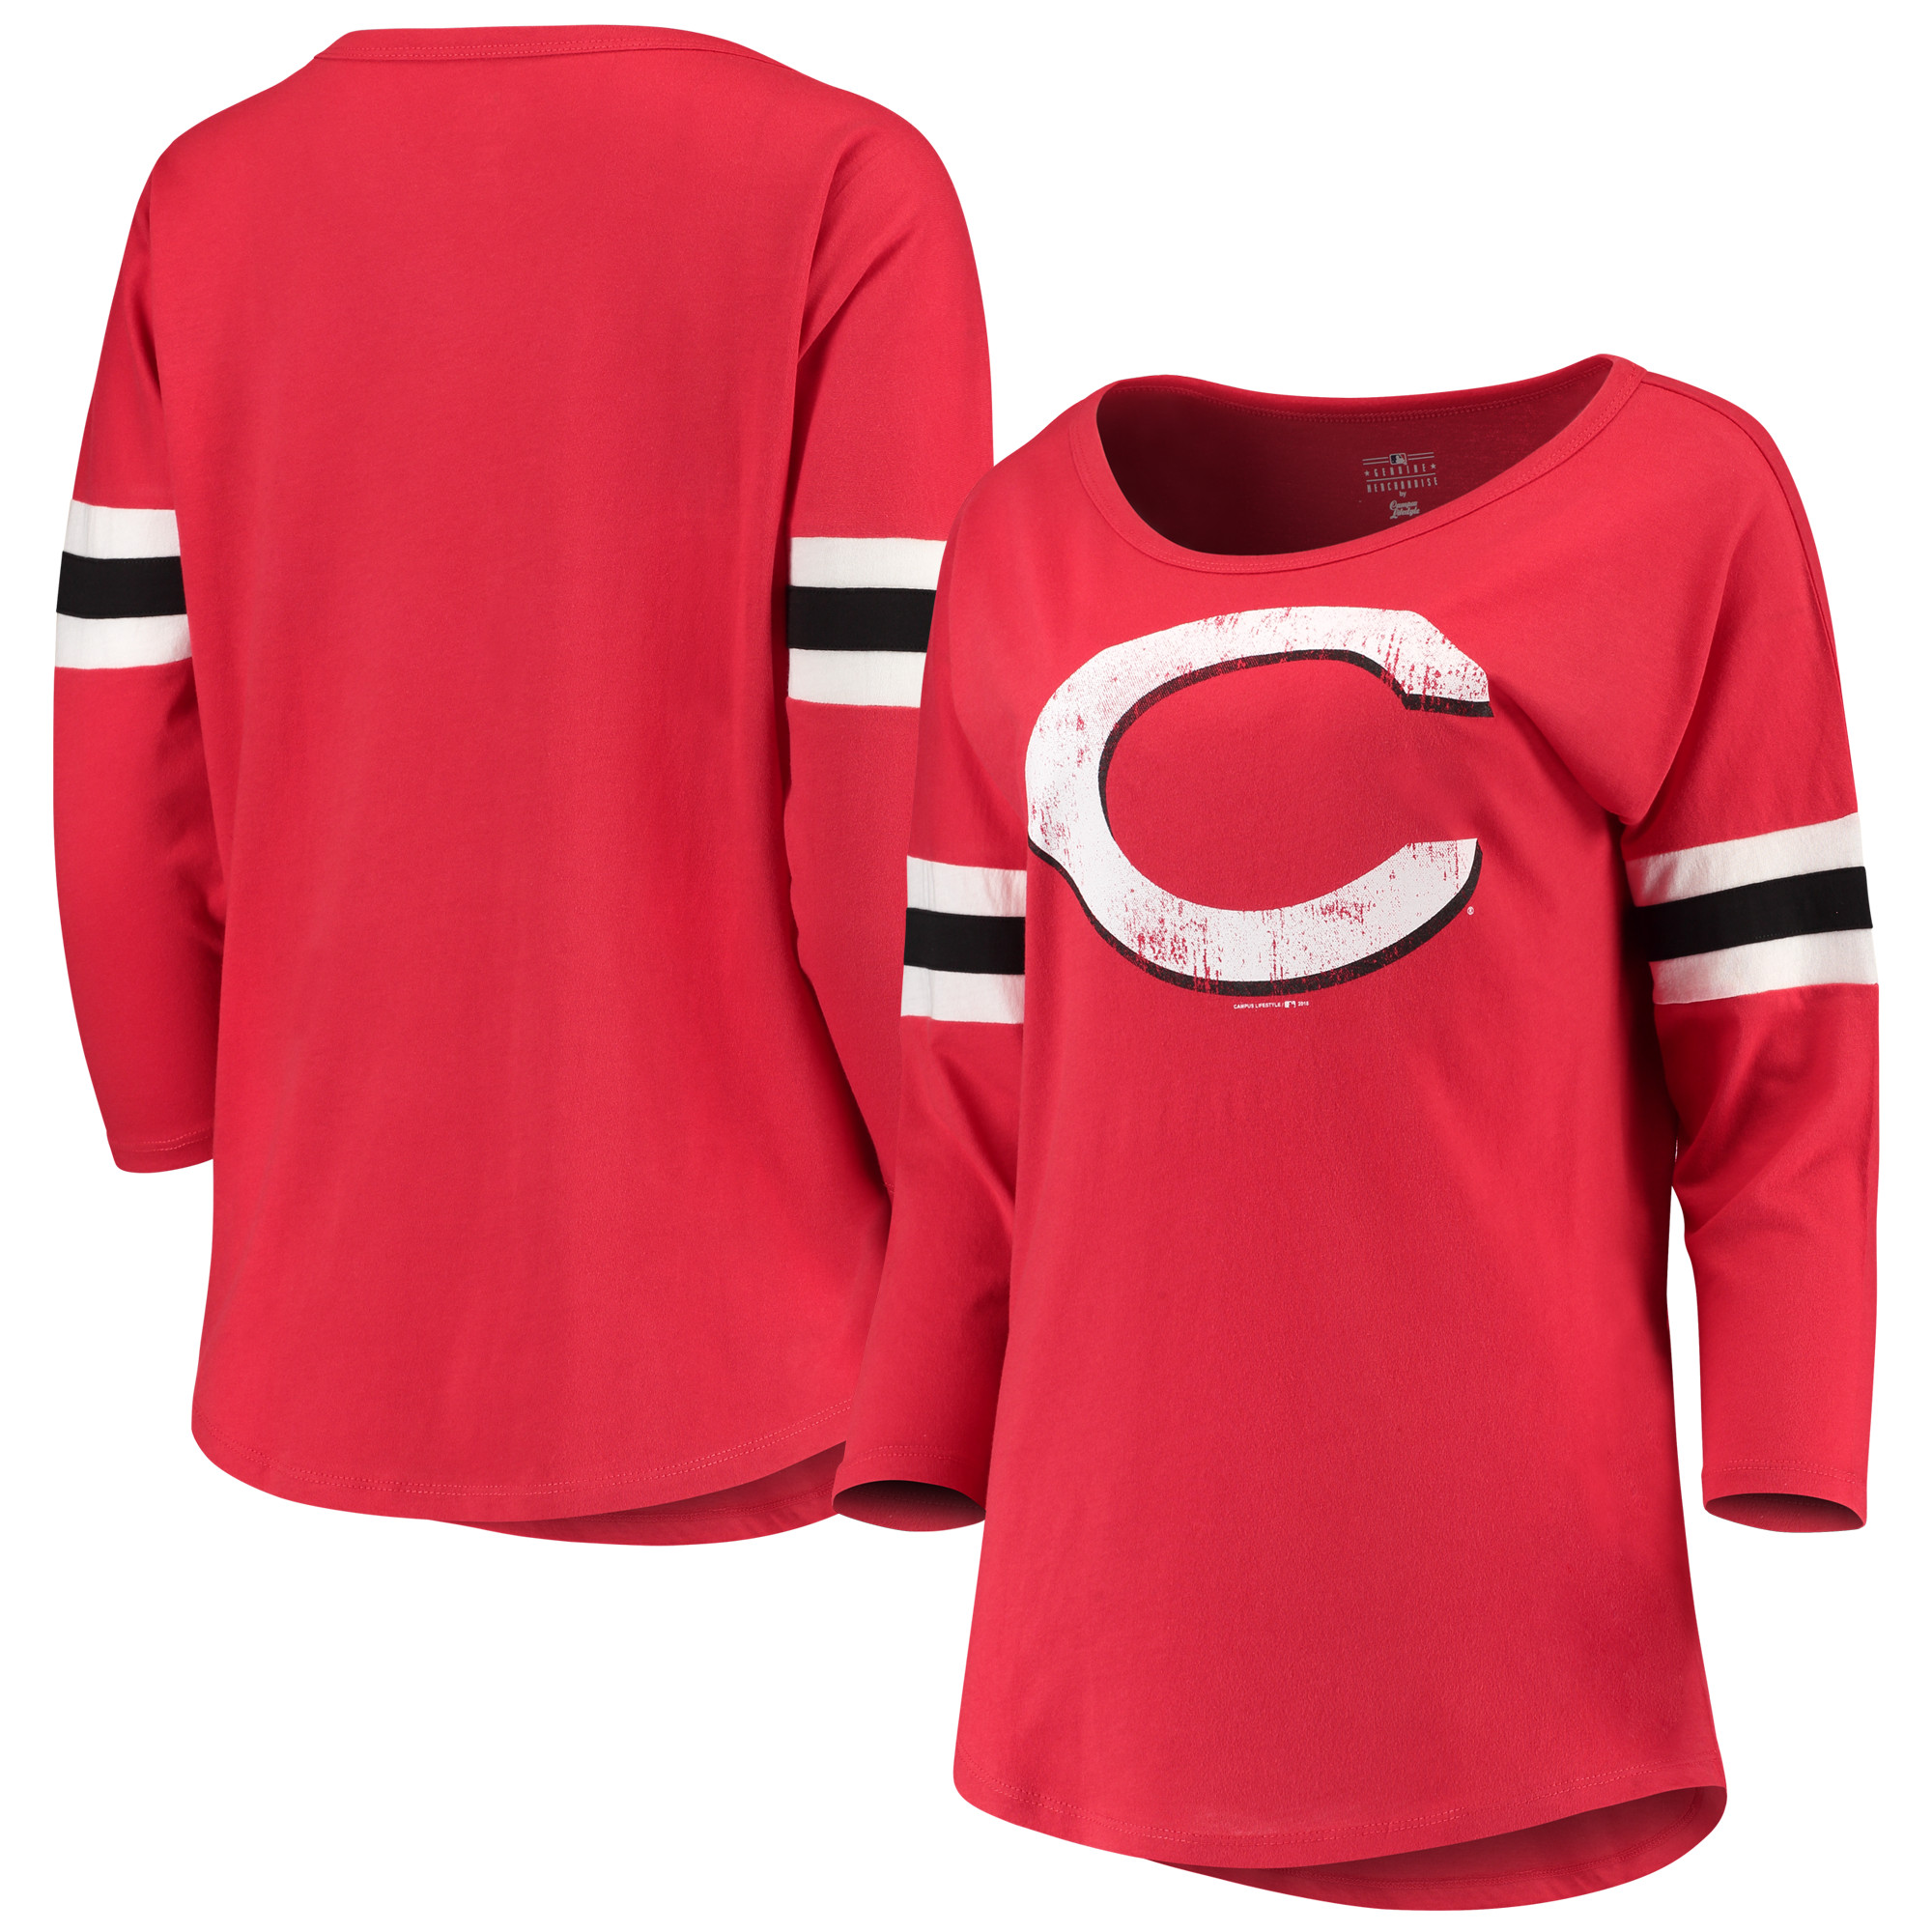 Women's New Era Red Cincinnati Reds Scoop Neck 3/4-Sleeve T-Shirt